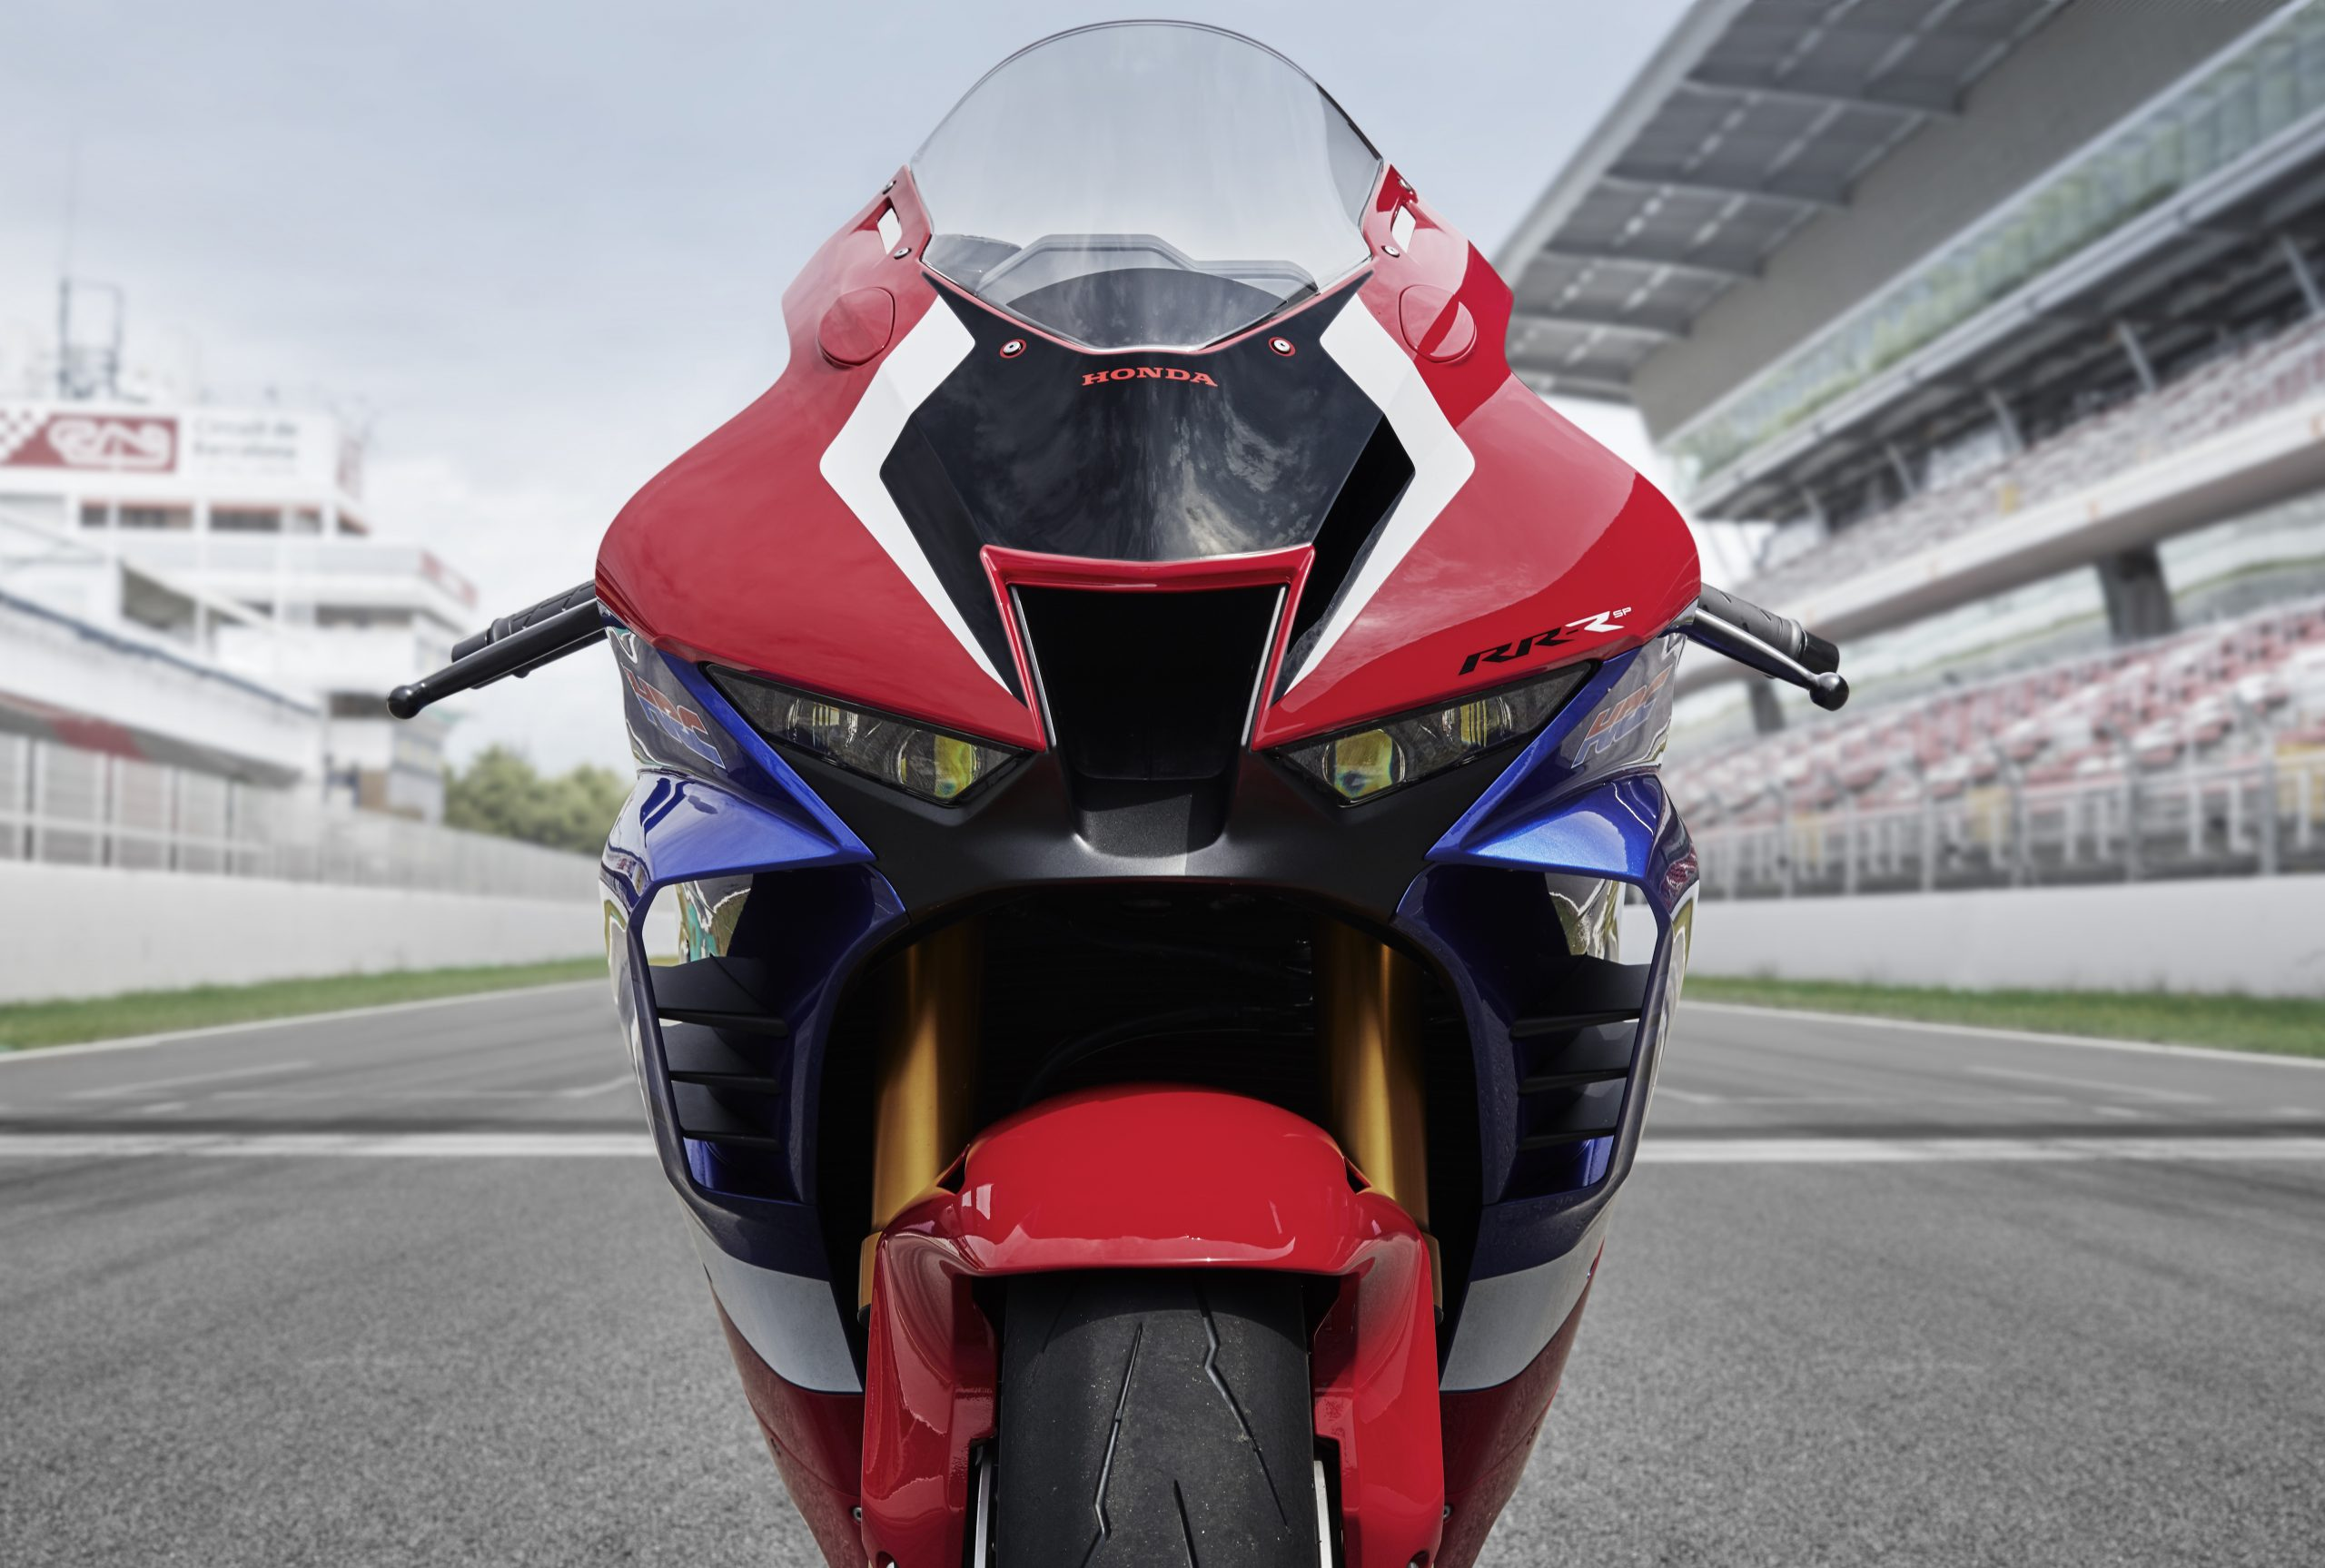 20YM_CBR1000RR-R_SP_Location_07_0501